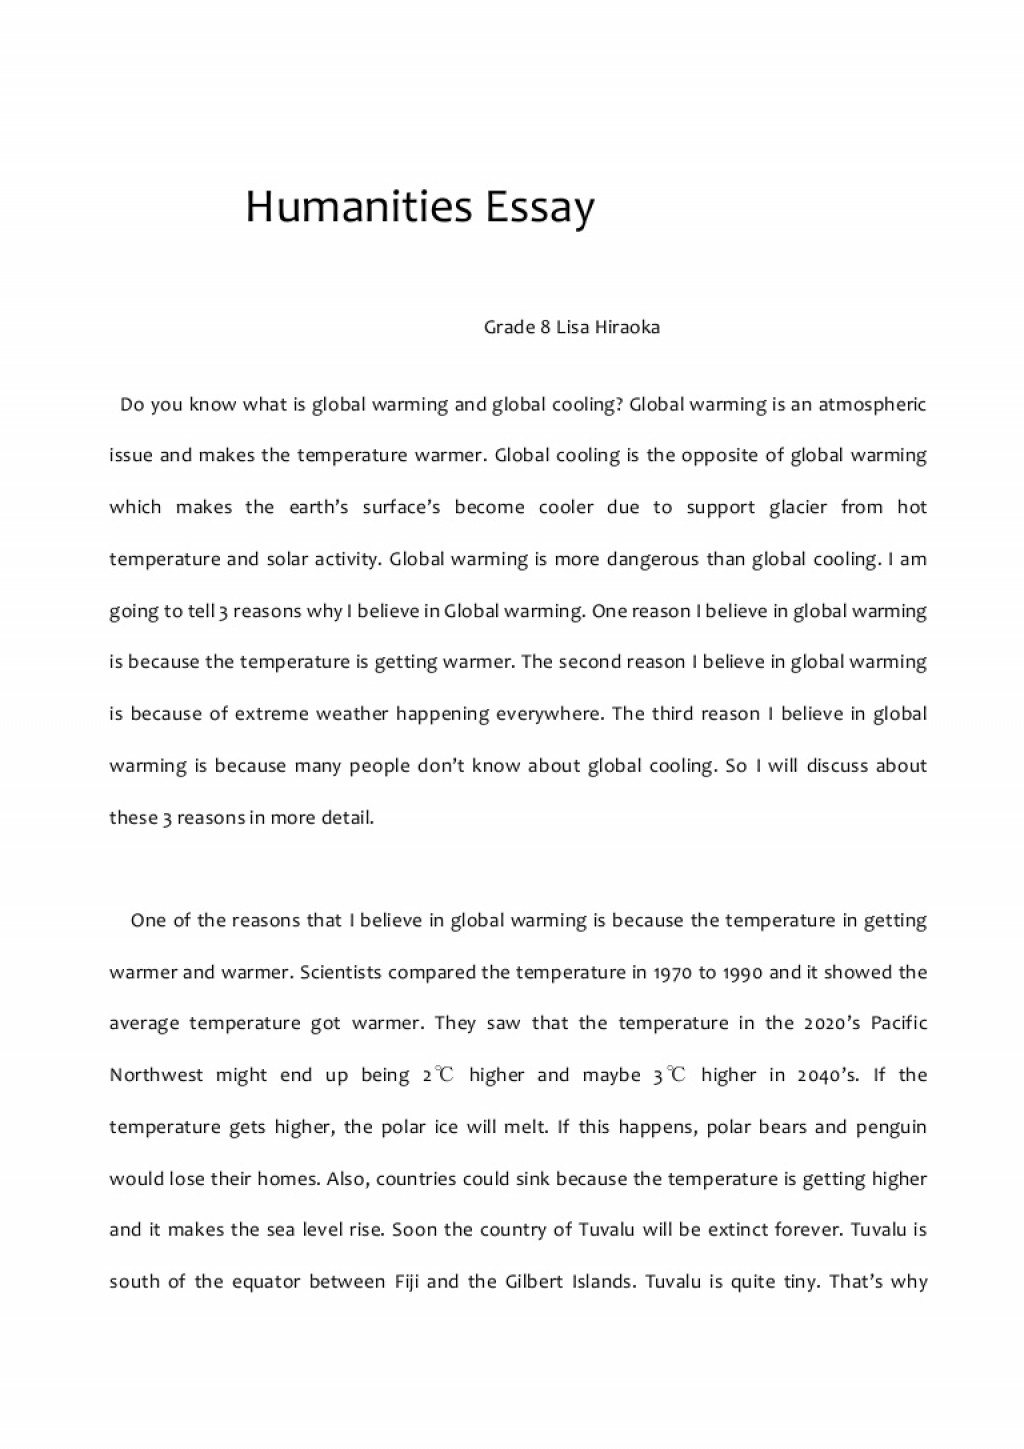 005 I Believe Essay Topics Best Narrative This Samples Humanitiesessay Phpapp02 Thumbn Good Template Example Stupendous Examples Personal College Large